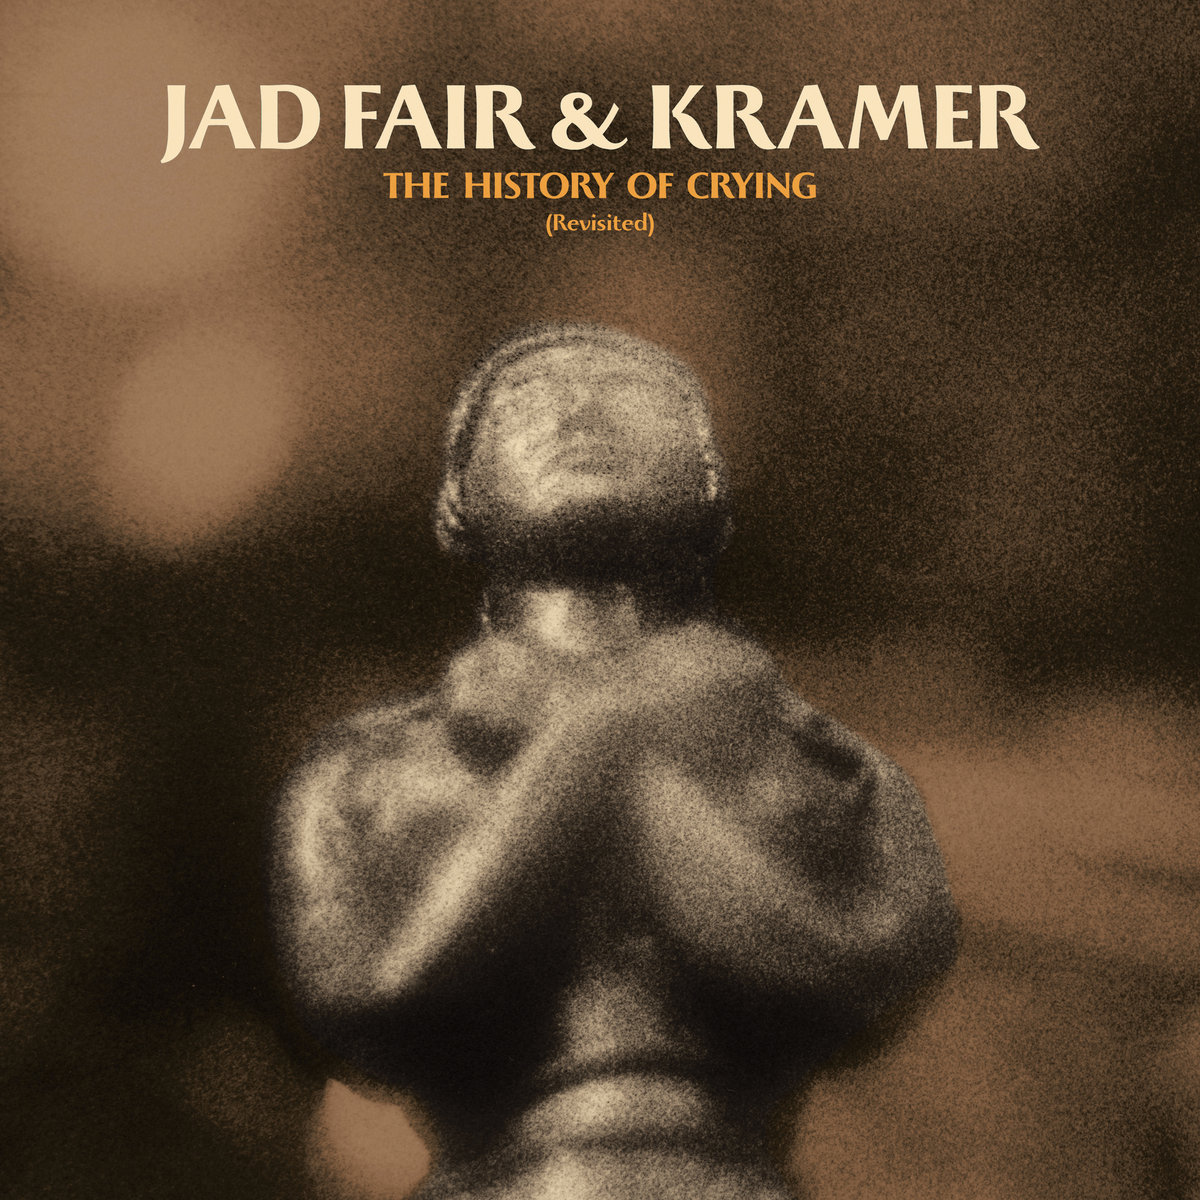 """Jad Fair + Kramer's """"History of Crying, Revisited"""" LP Released Today with Premier of 'I Wanna Make A Movie' Video ft. Paul Leary of Butthole Surfers"""